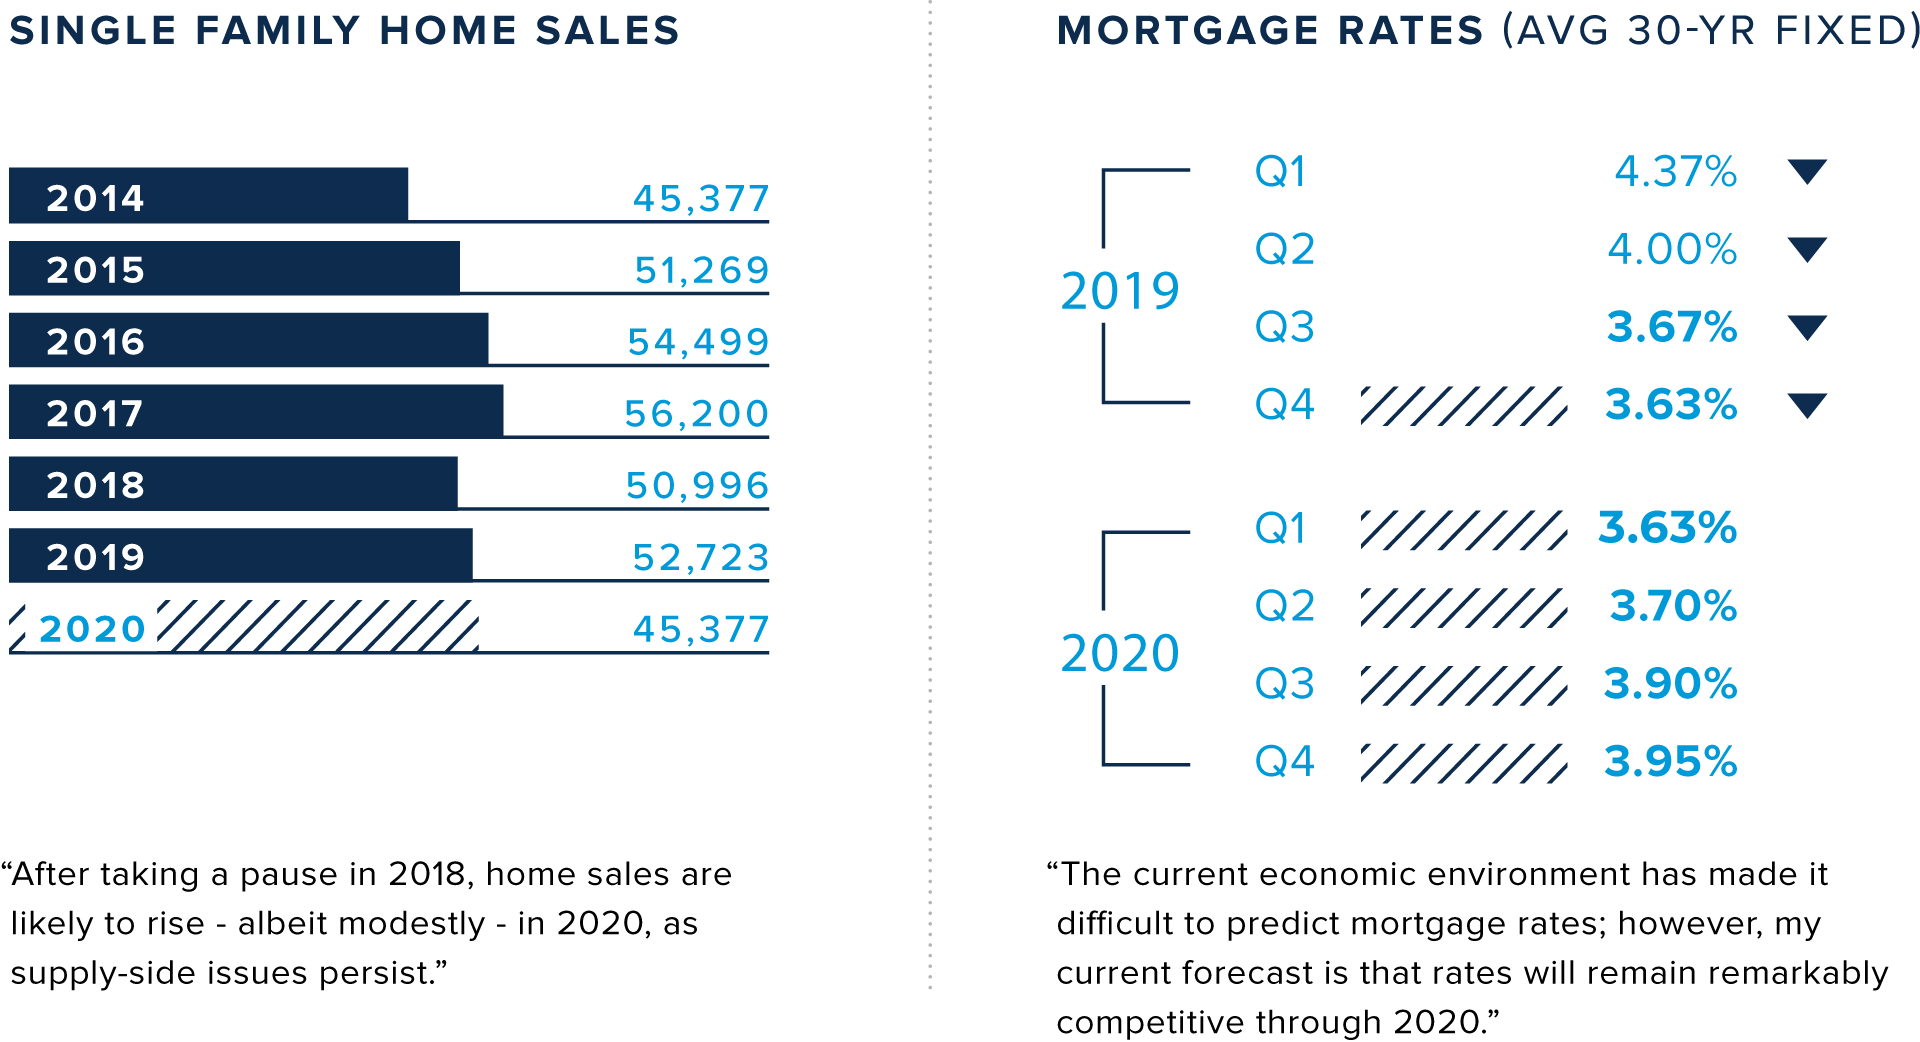 MORTGAGE-RATES-home-sales